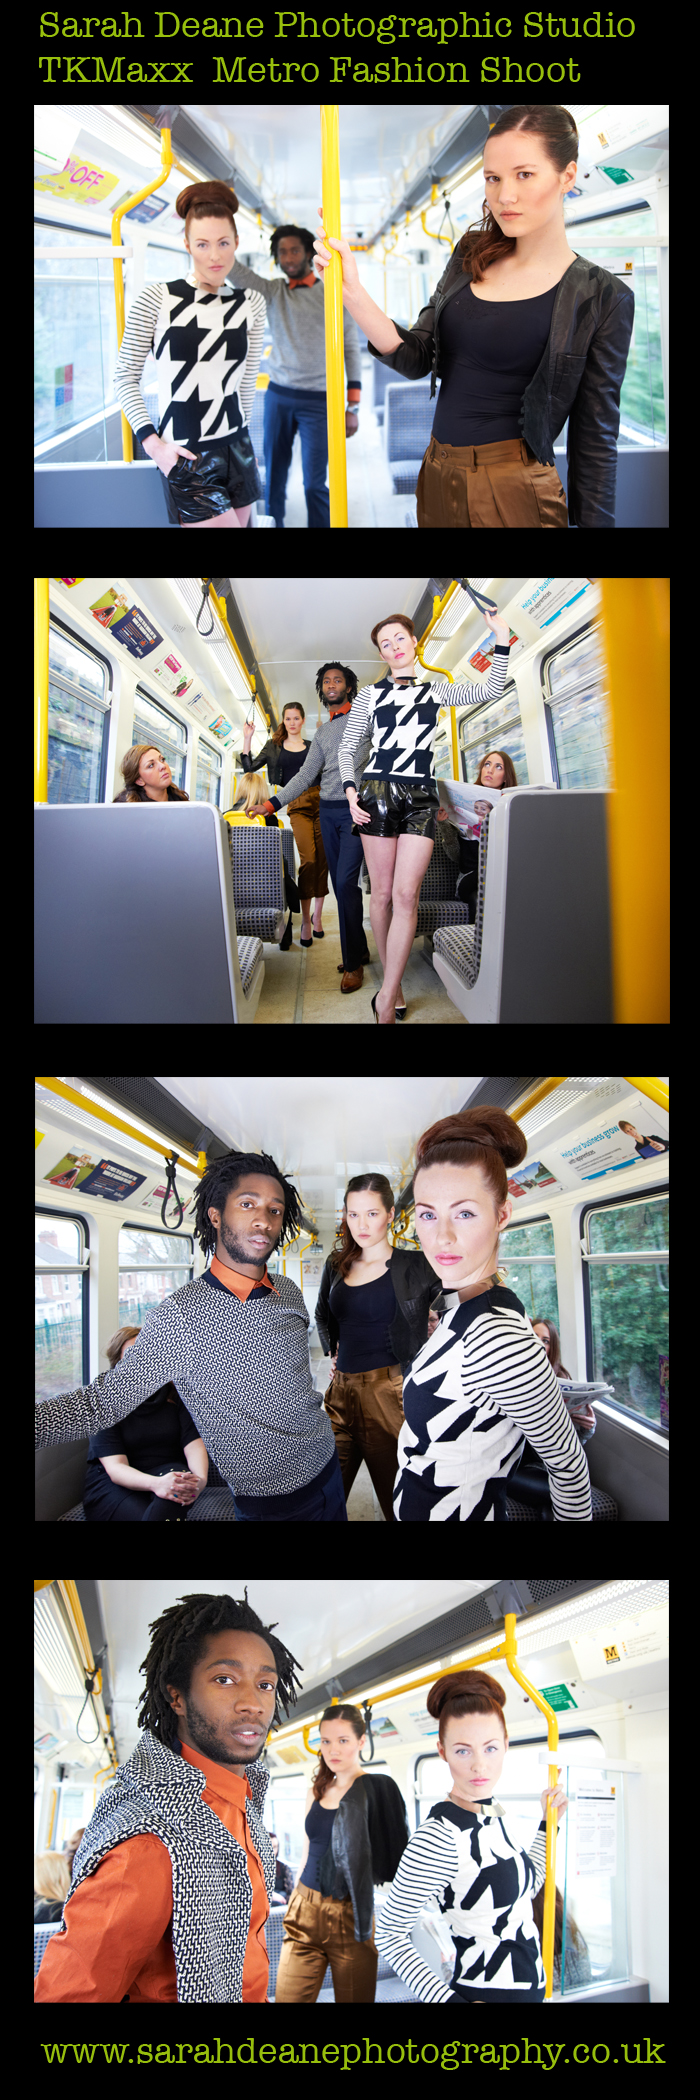 TKMaxx Fashion shoot to promote the new store opening in newcastle on a moving metro carriage